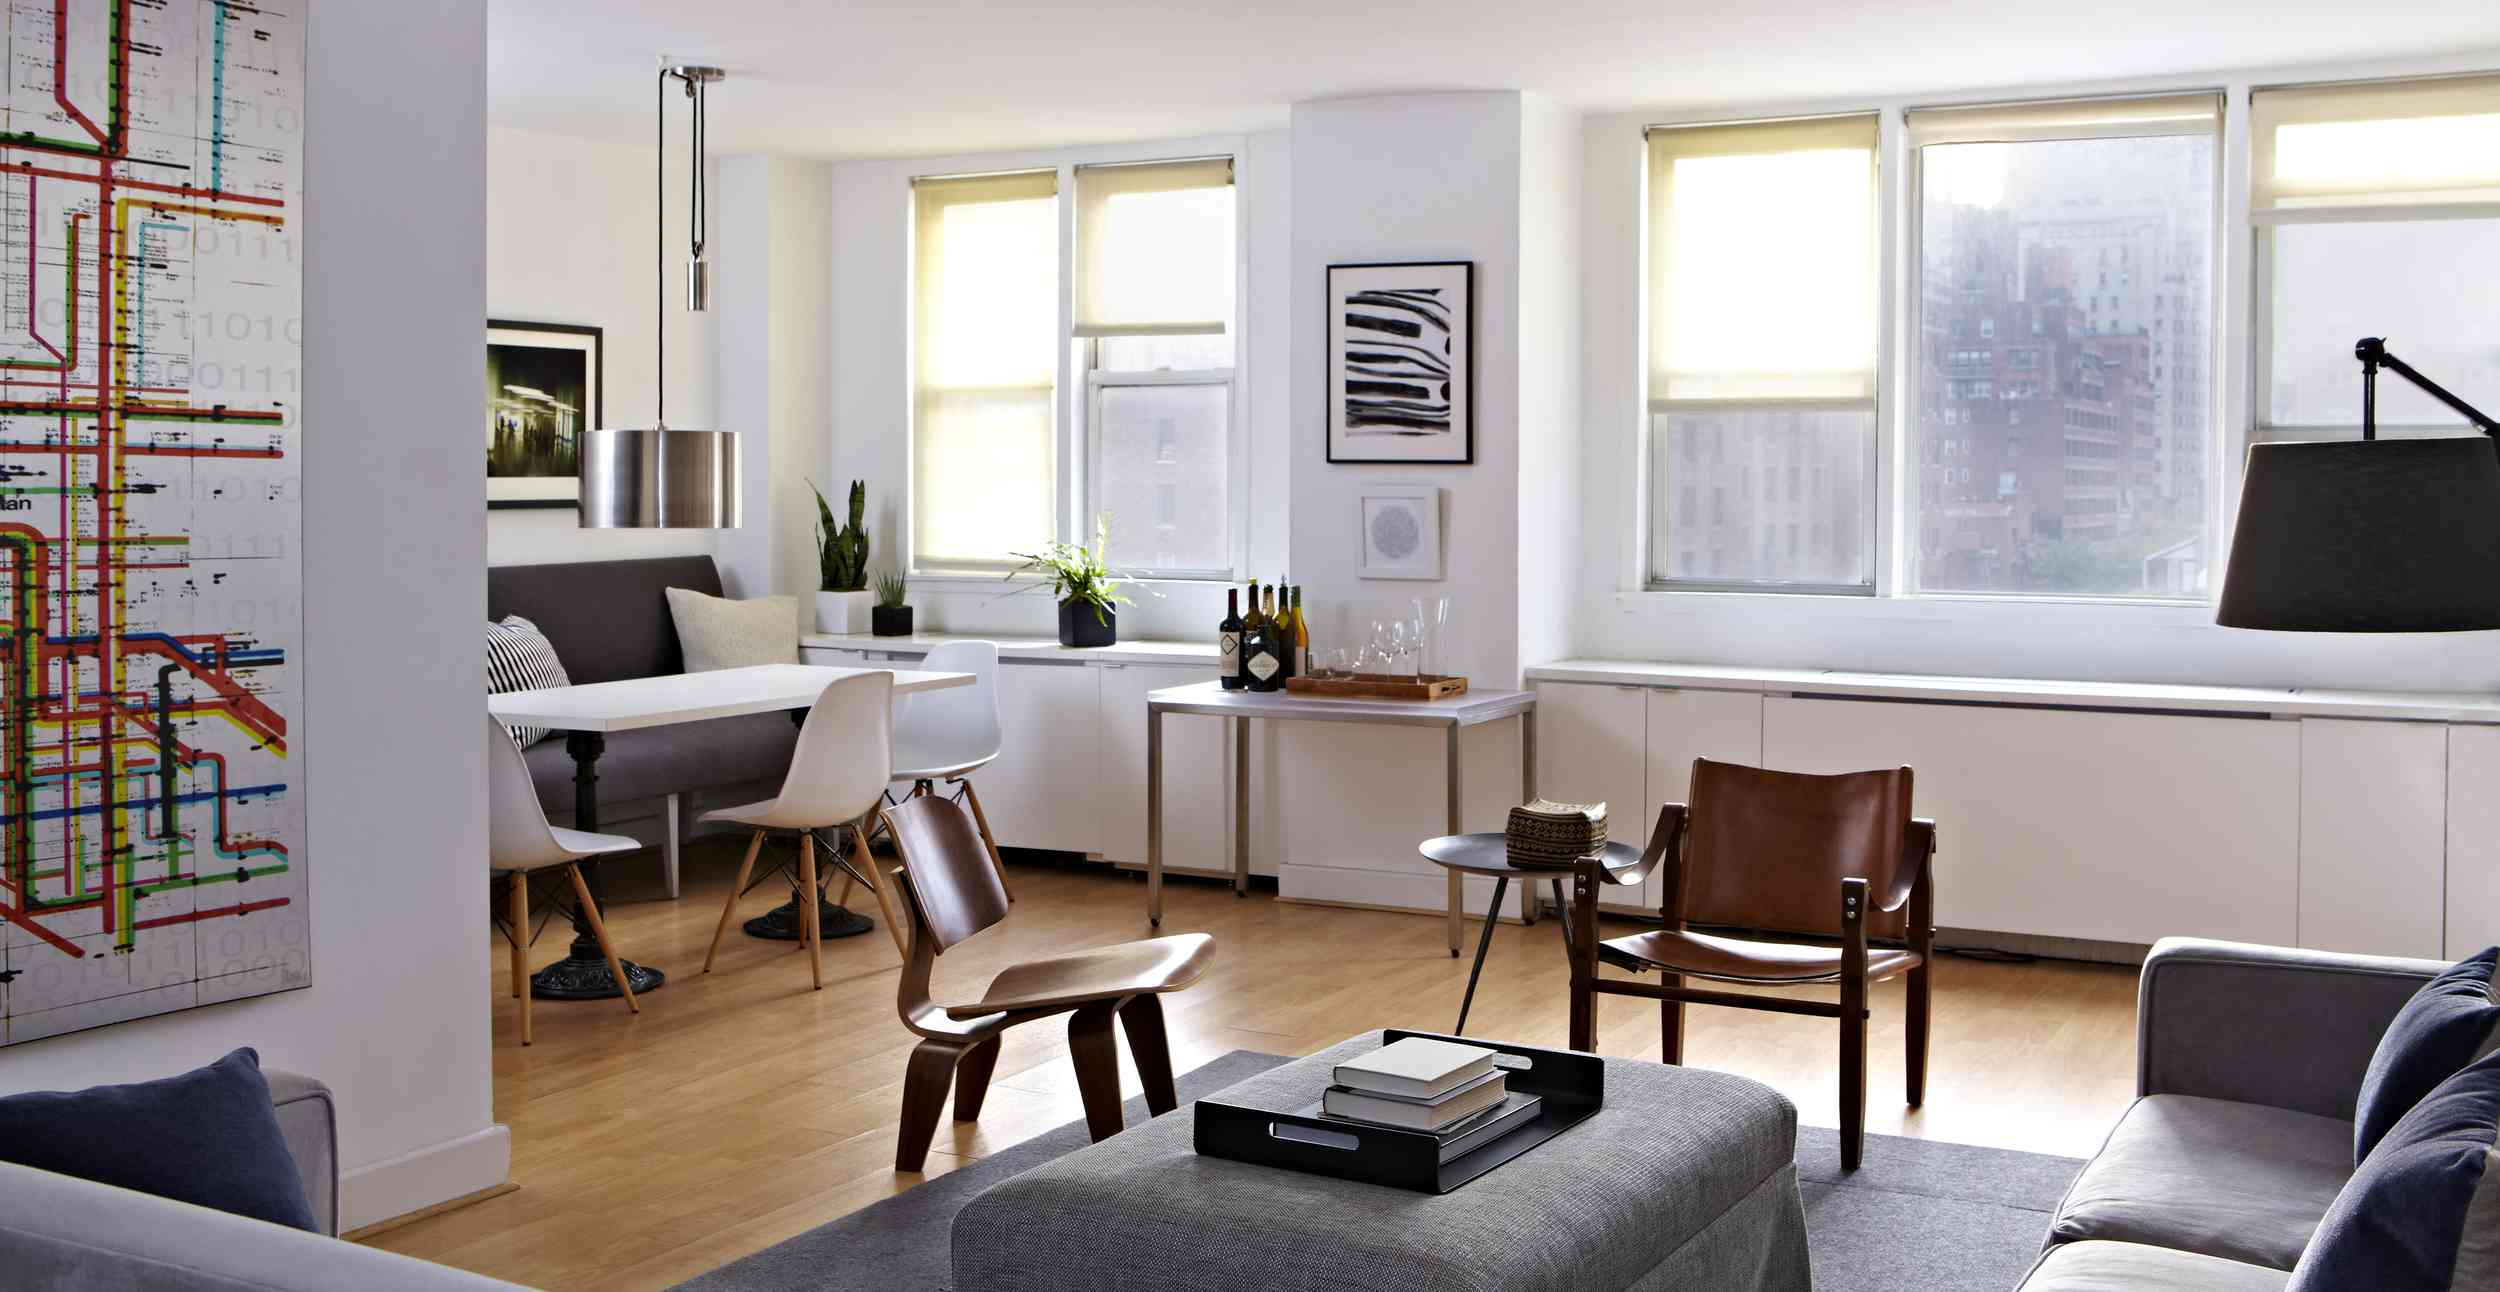 Open layout apartment with modern furniture.